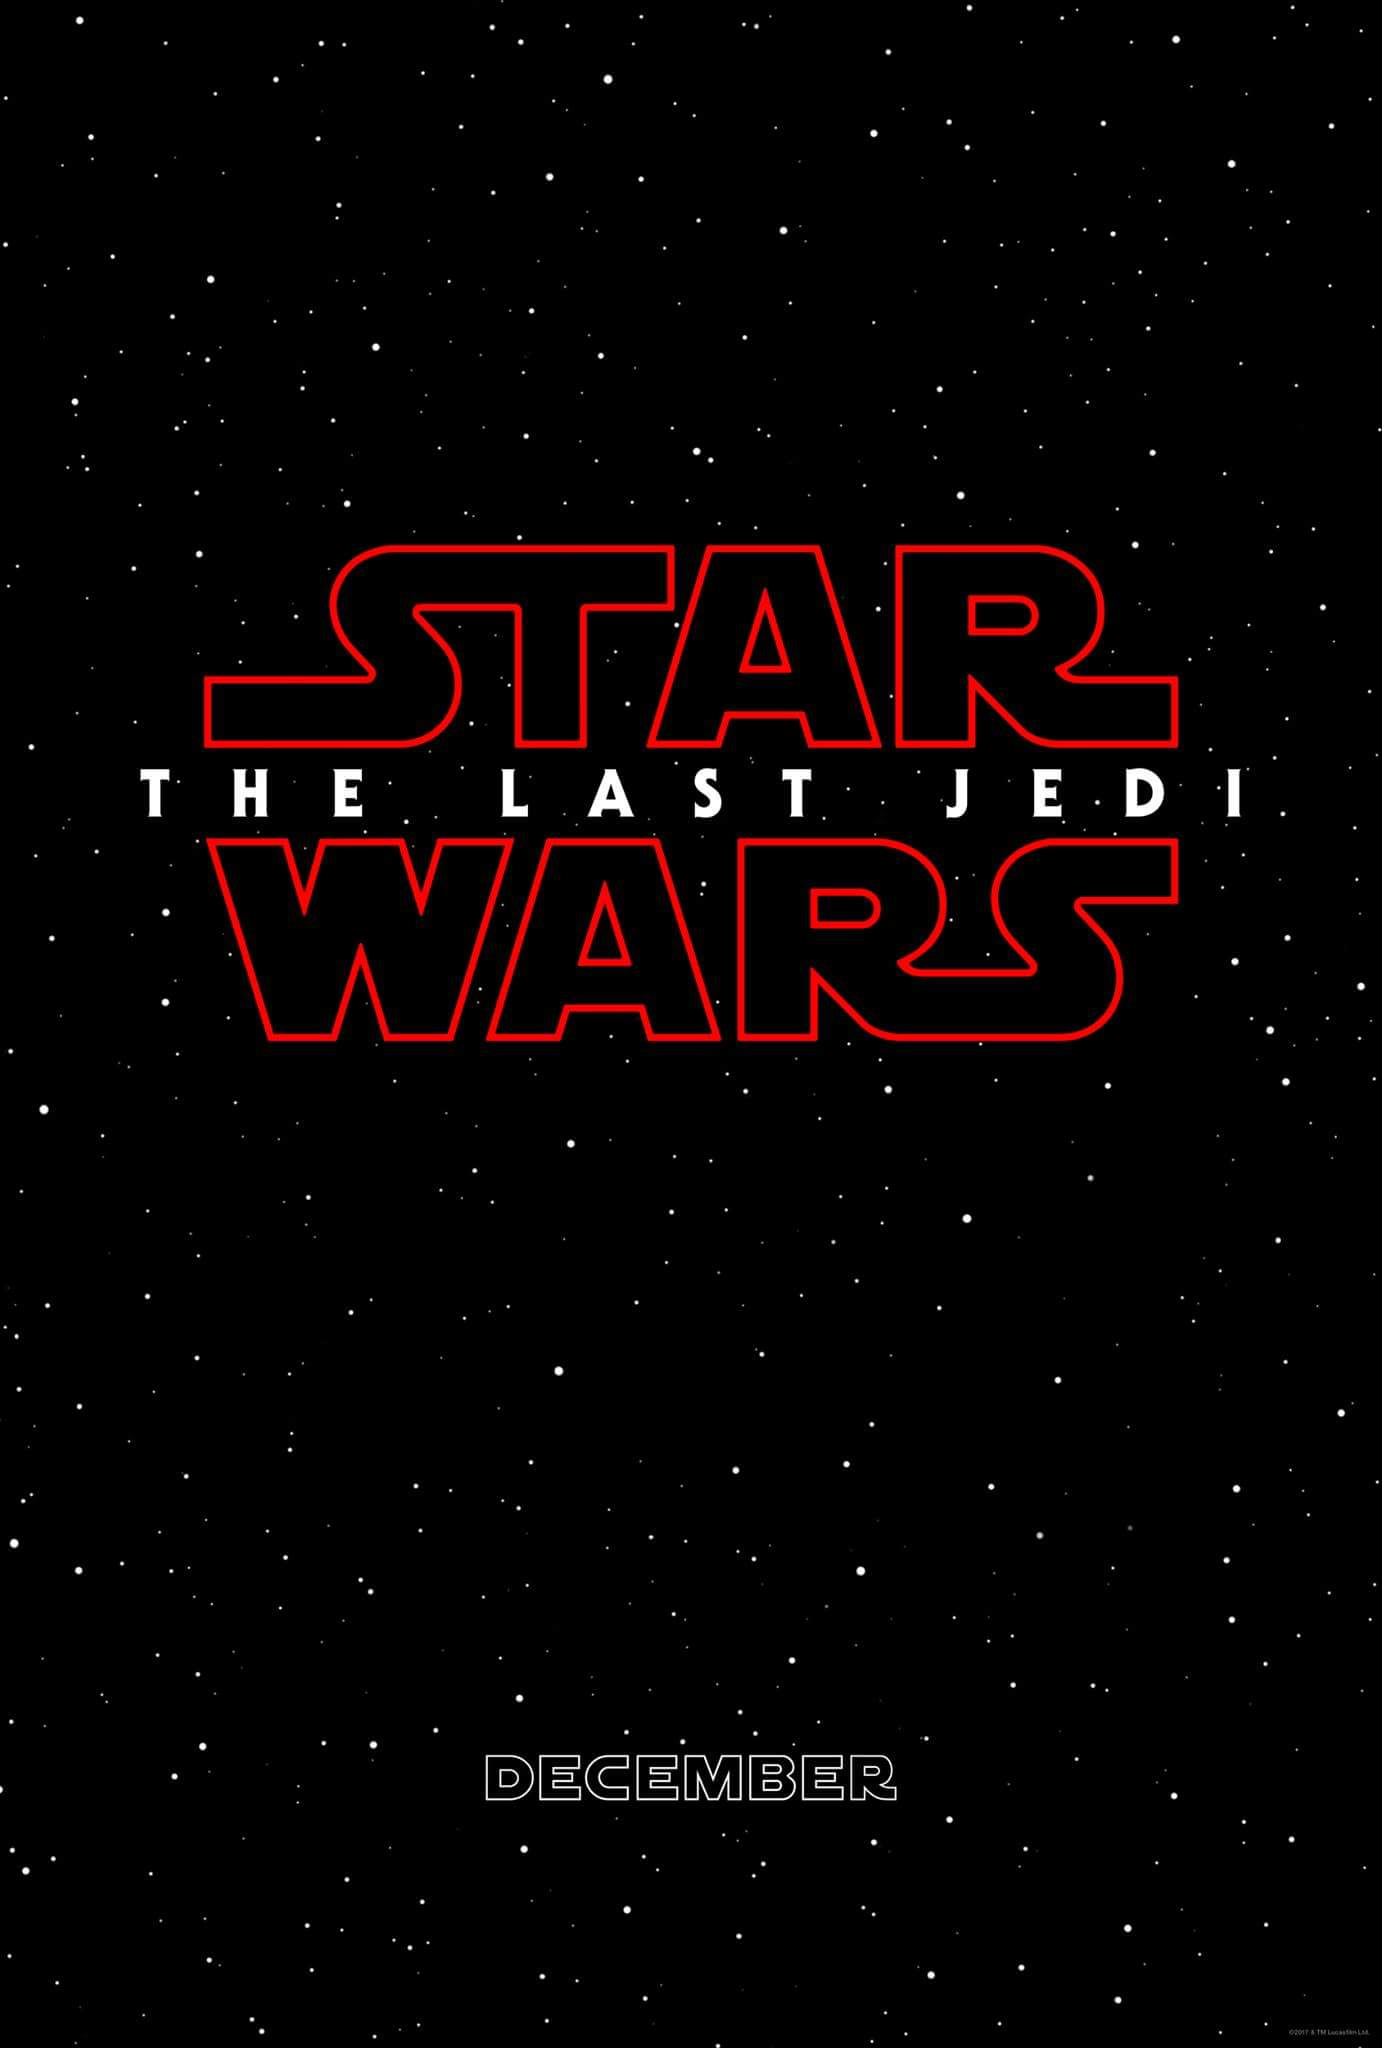 Episode VIII Officially Star Wars: The Last Jedi